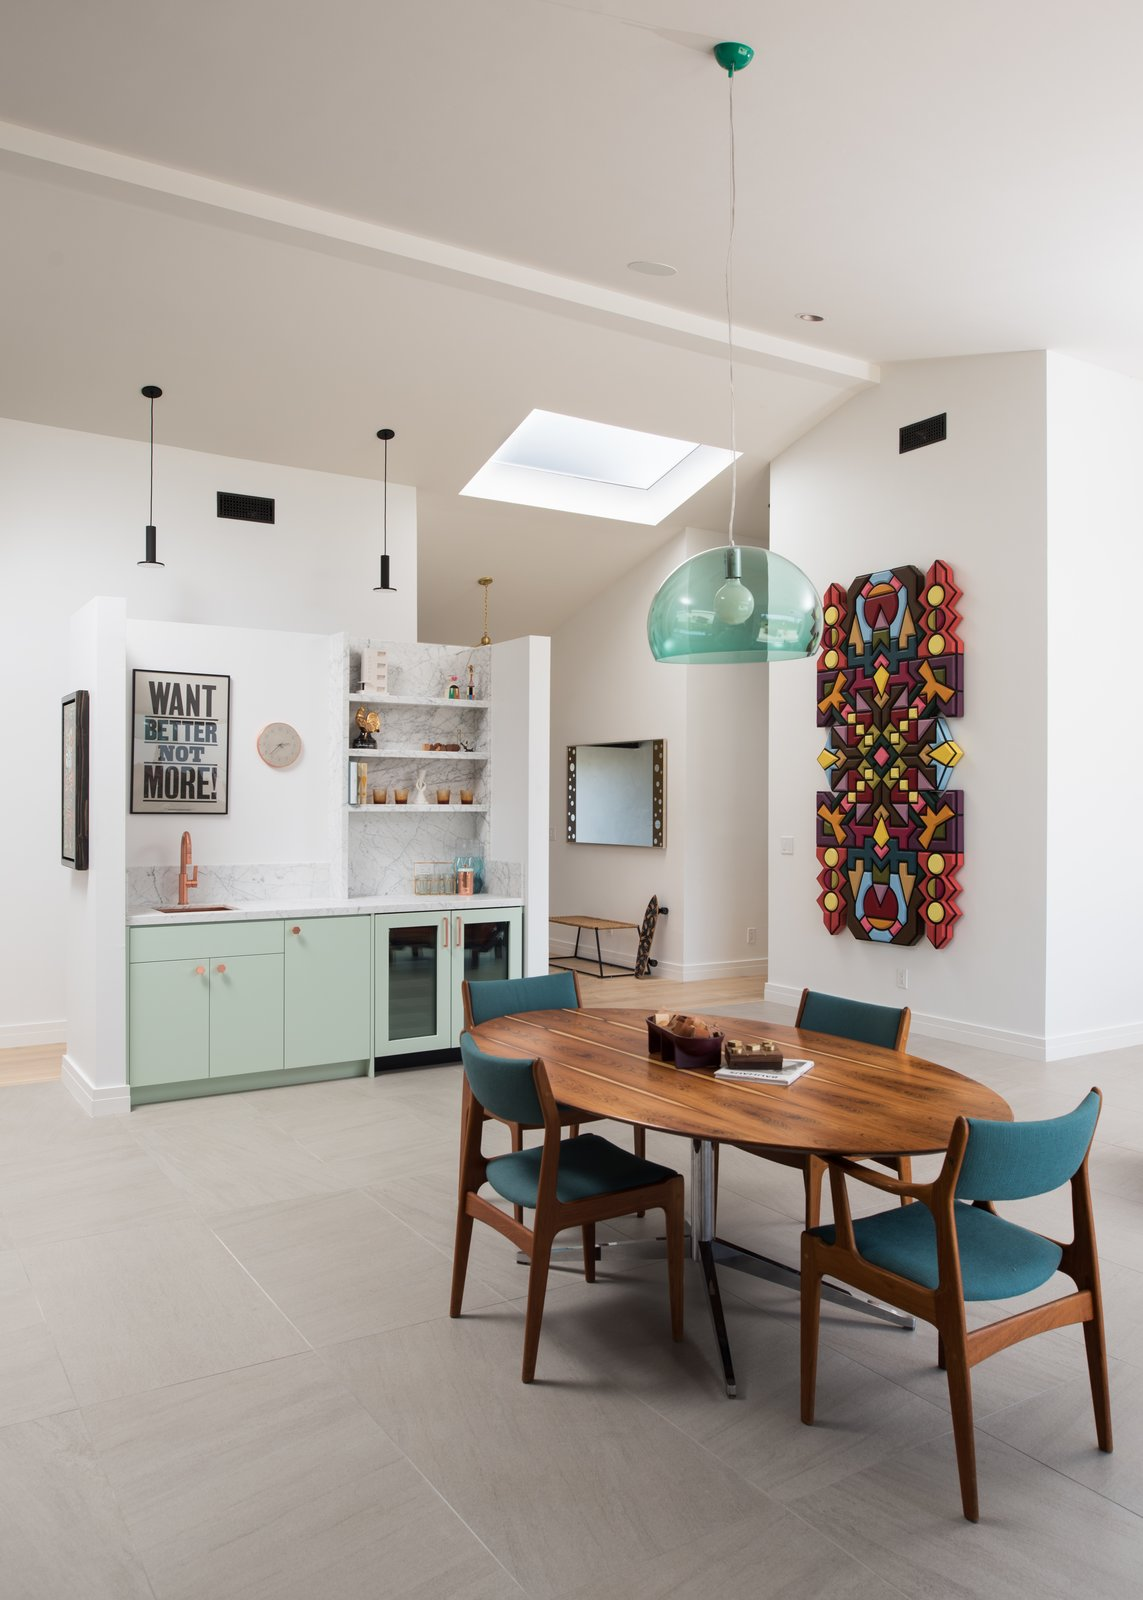 Dining Room, Chair, Table, Ceiling Lighting, Pendant Lighting, Storage, Recessed Lighting, and Porcelain Tile Floor  1980s Modern Meets The New Millennium